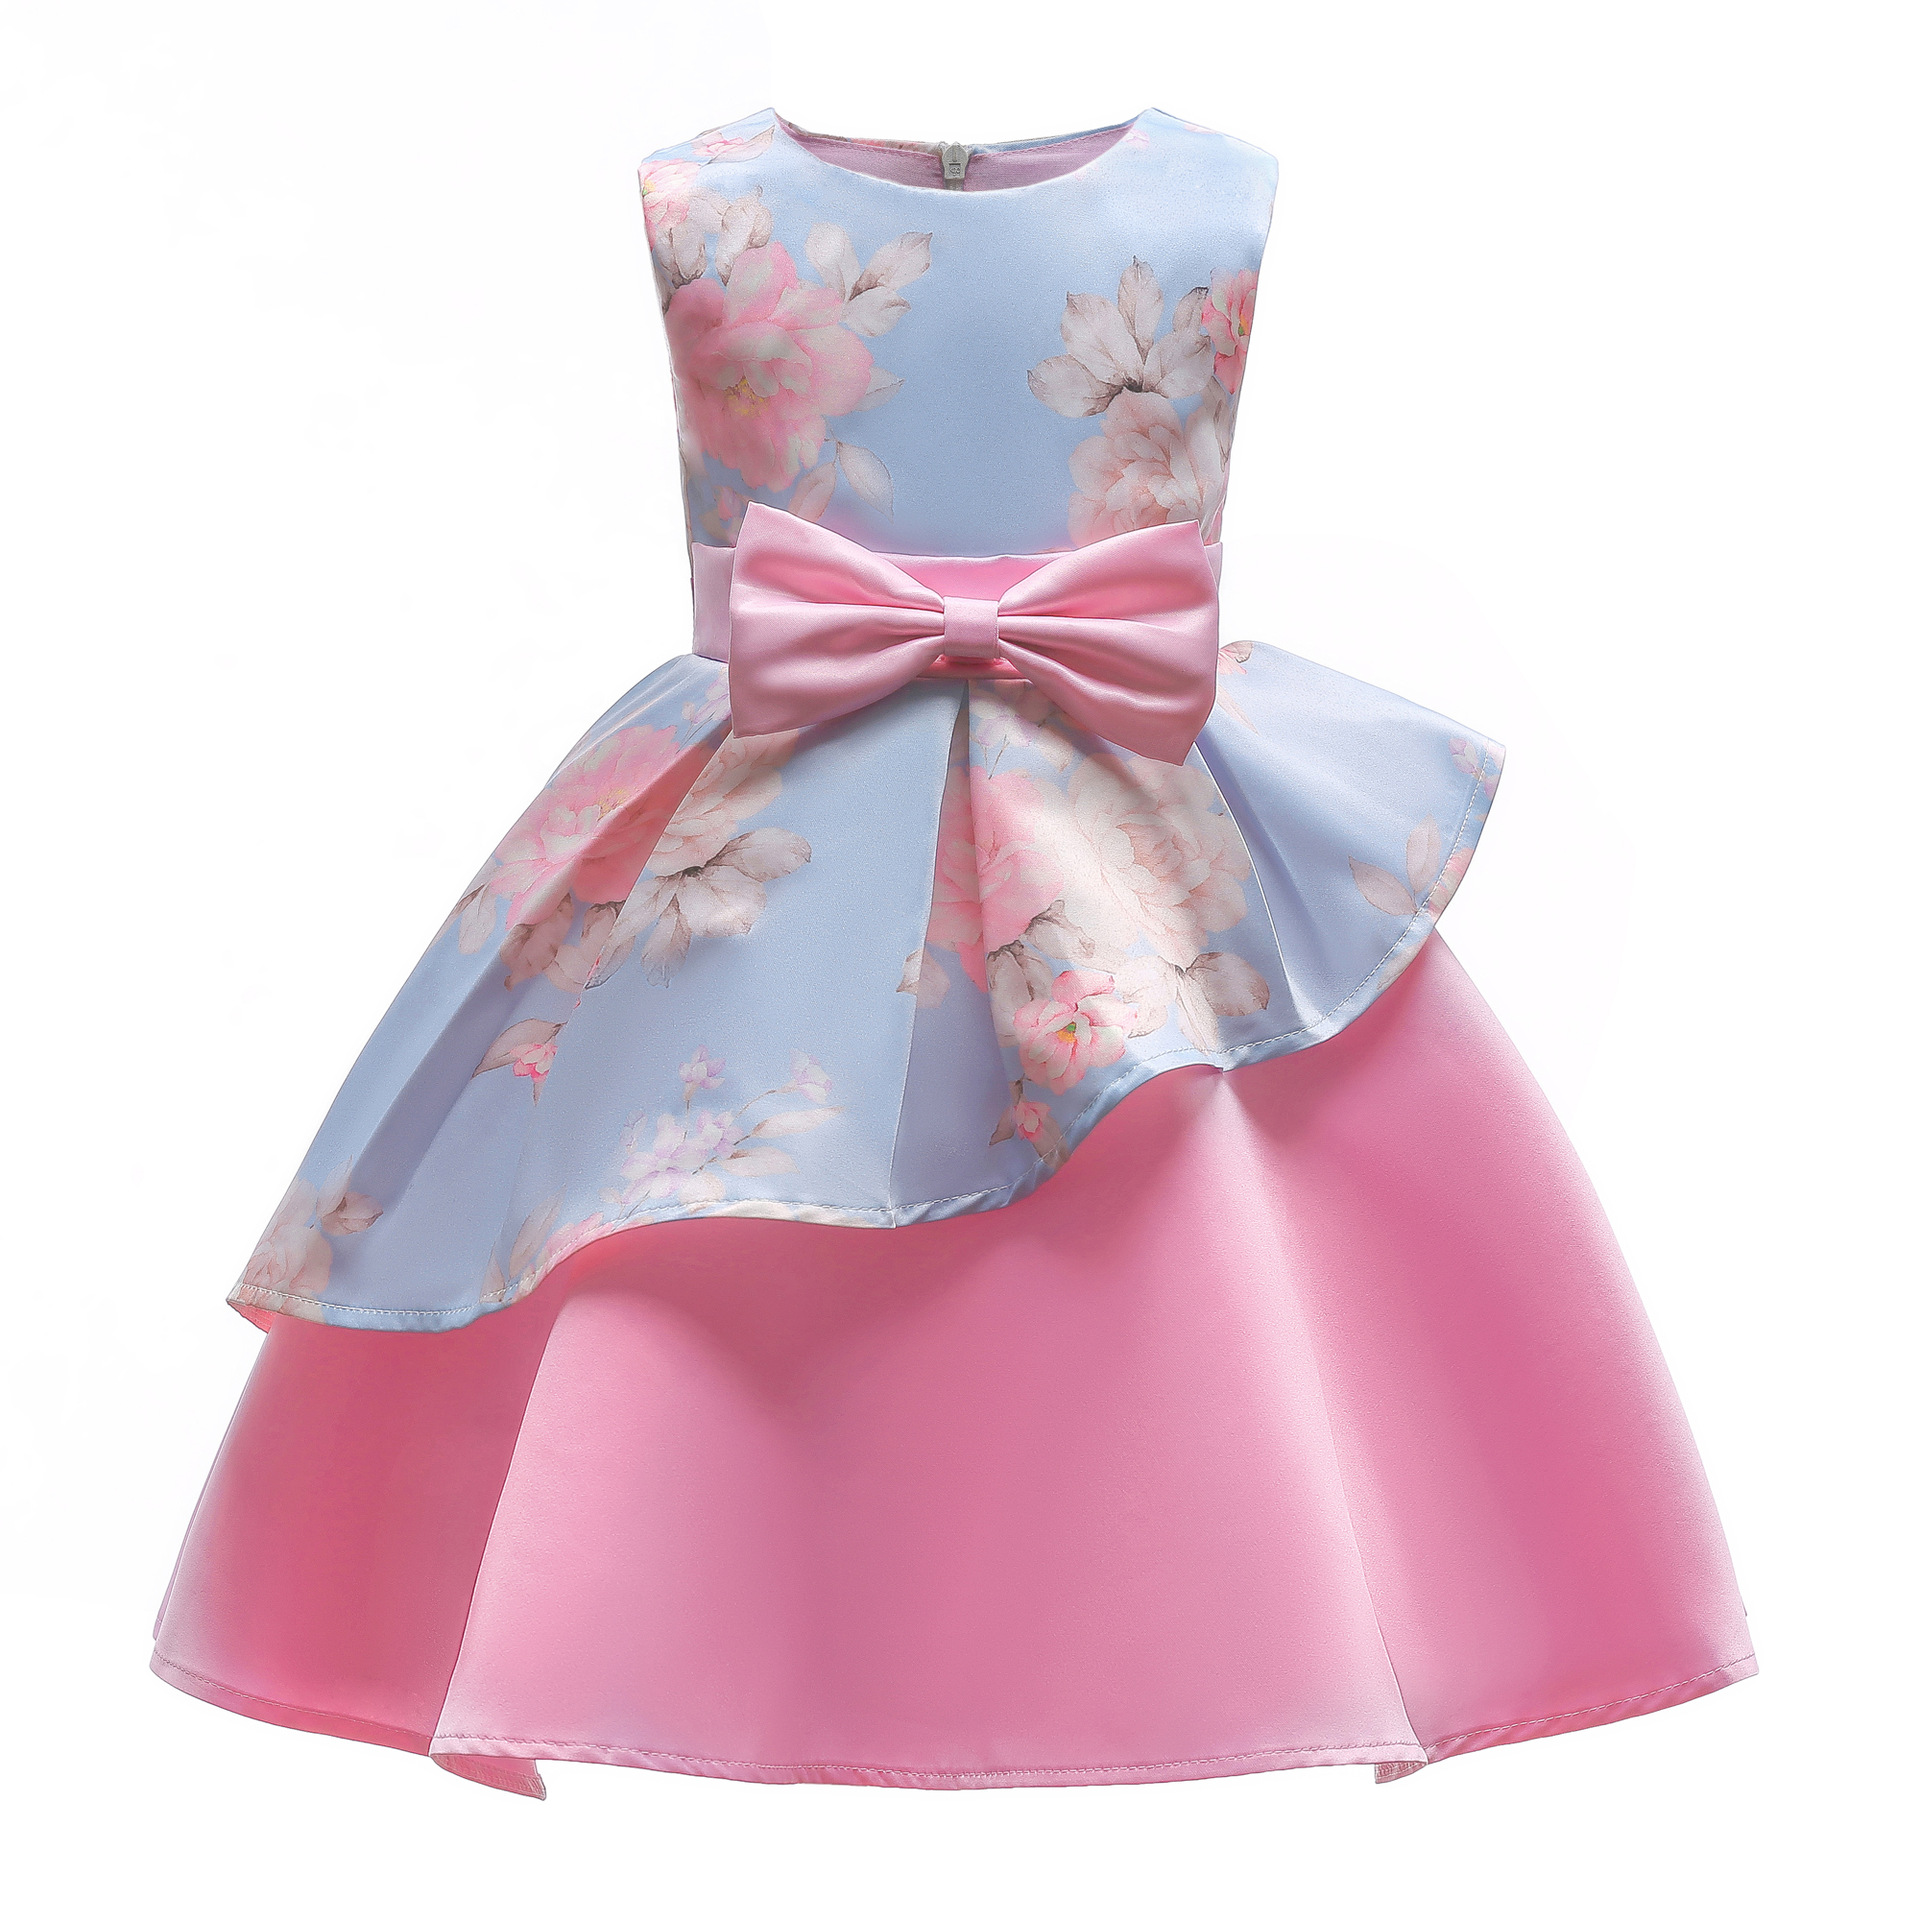 Princess Party Dresses for Girls 39 Dresses Summer Silk 3 4 5 6 7 8 9 10 Y Gown Floral Evening Wedding Prom Bow 2019 in Dresses from Mother amp Kids